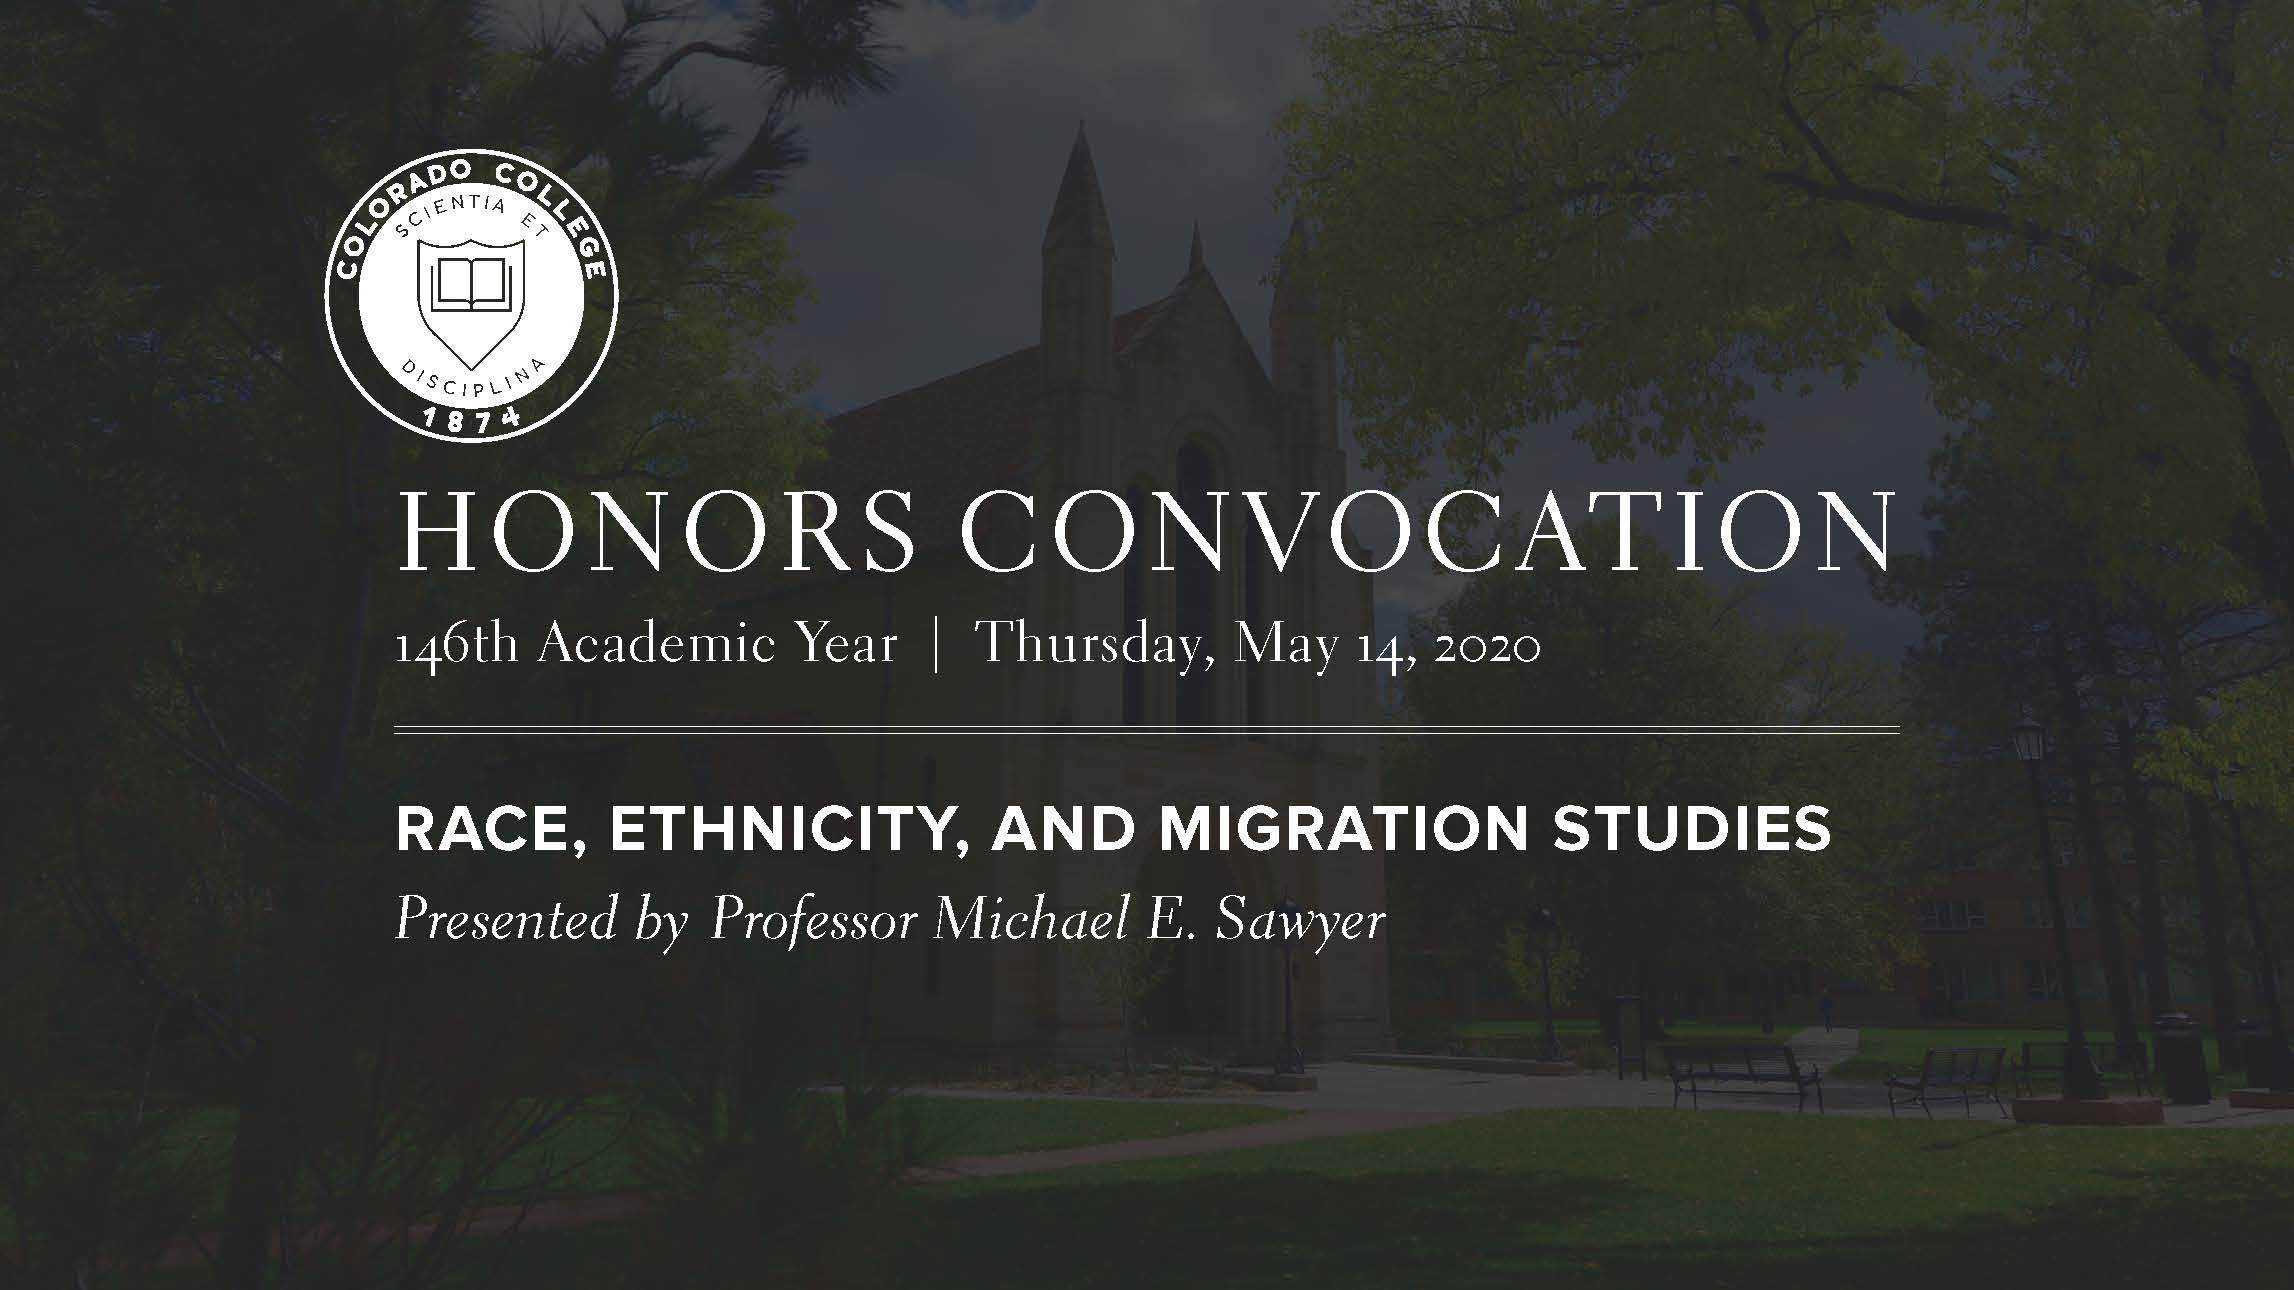 race, ethnicity, and migration studies video thumbnail